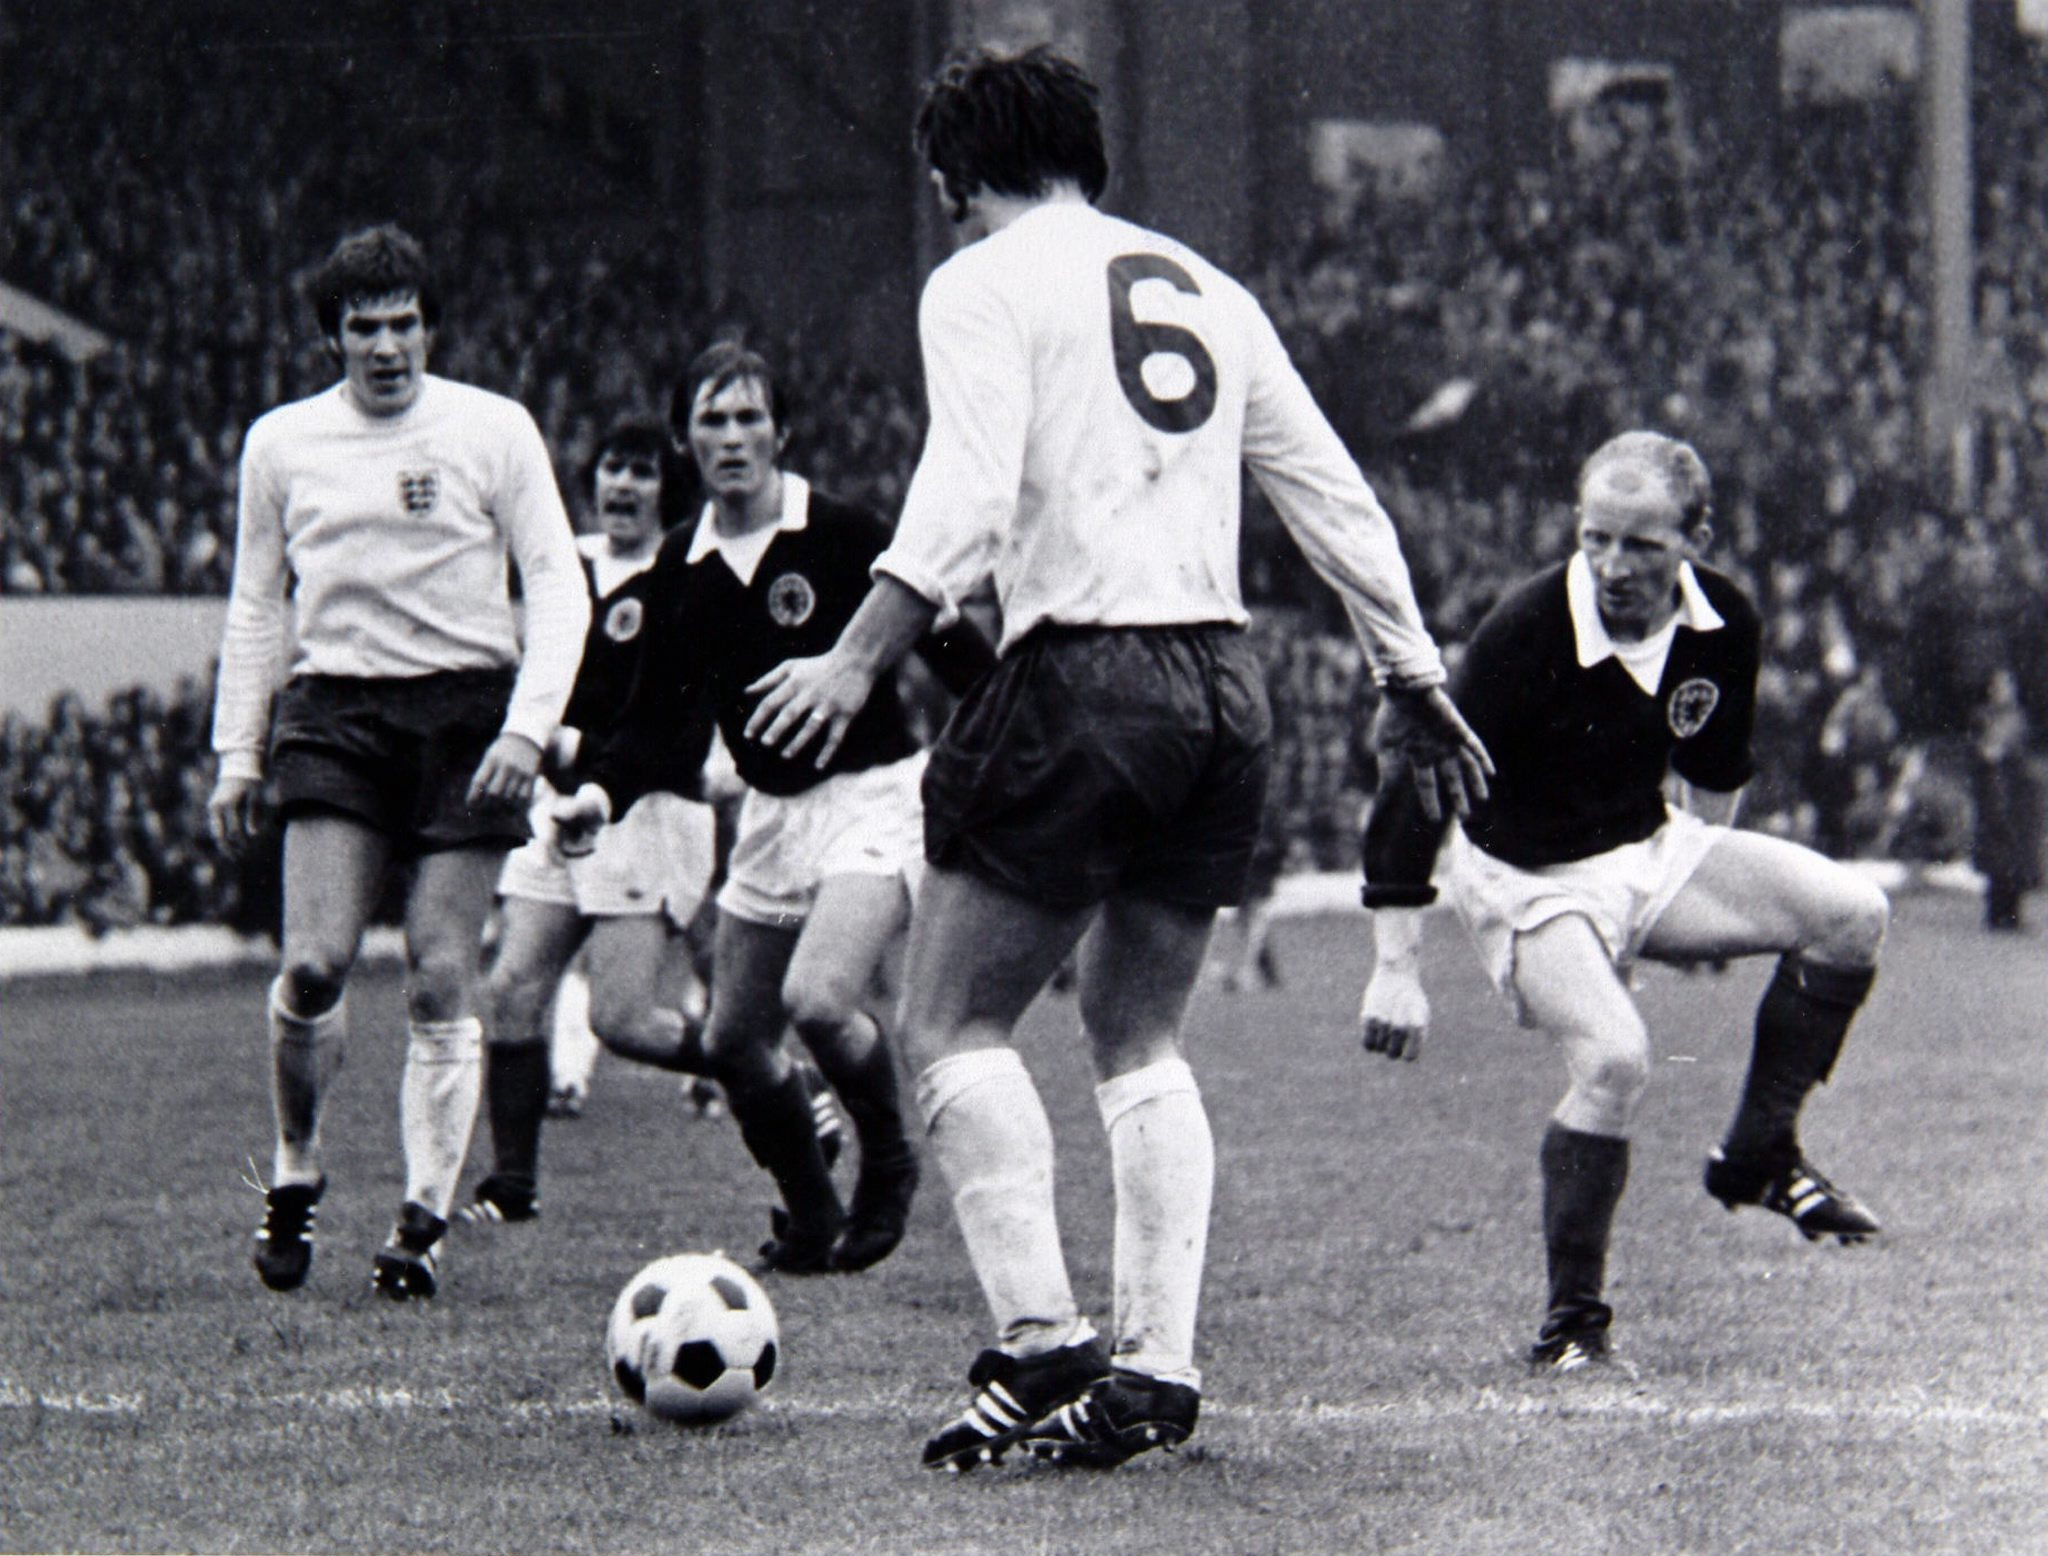 NOW YOU KNOW Jinky was left on bench during 1974 World Cup Finals